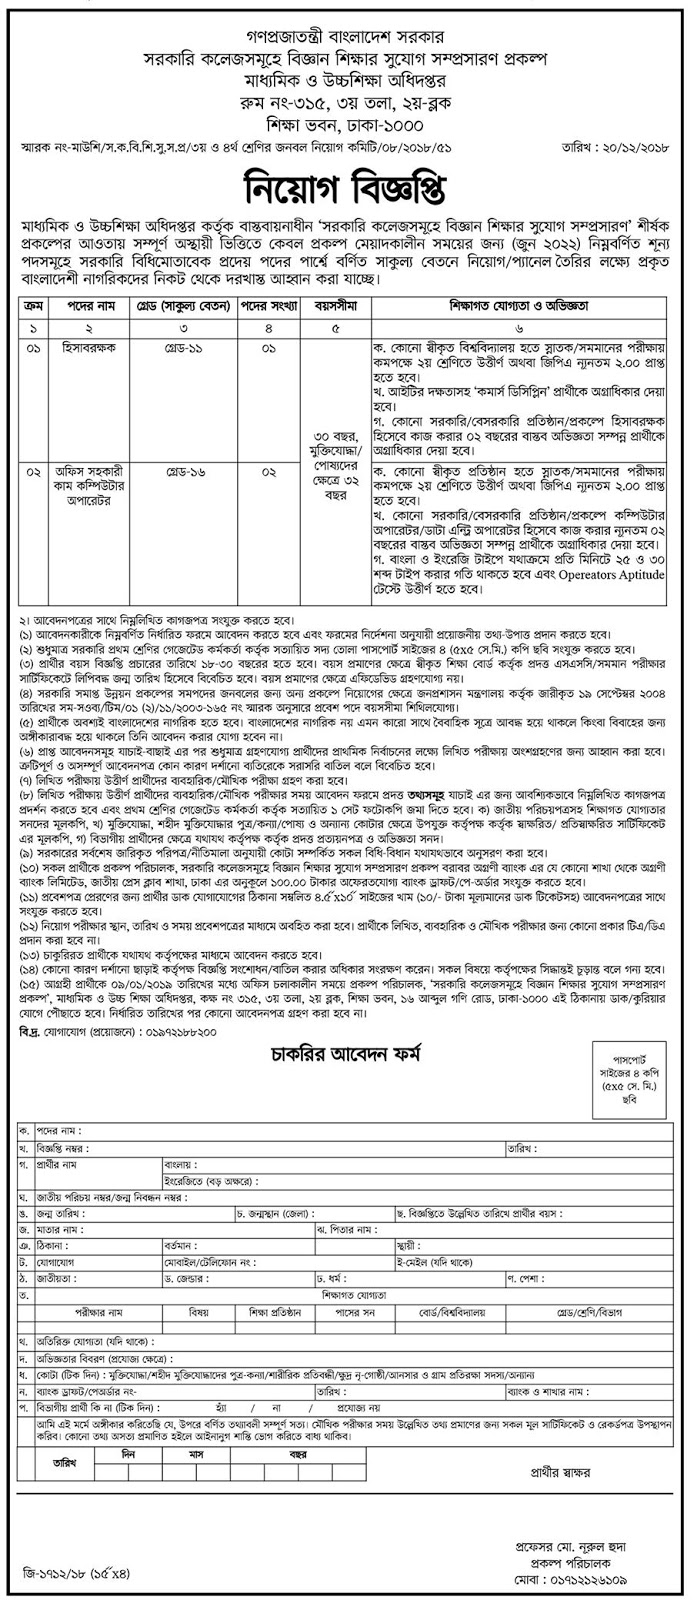 Directorate of Secondary and Higher Education (DSHE)Job Circular 2018